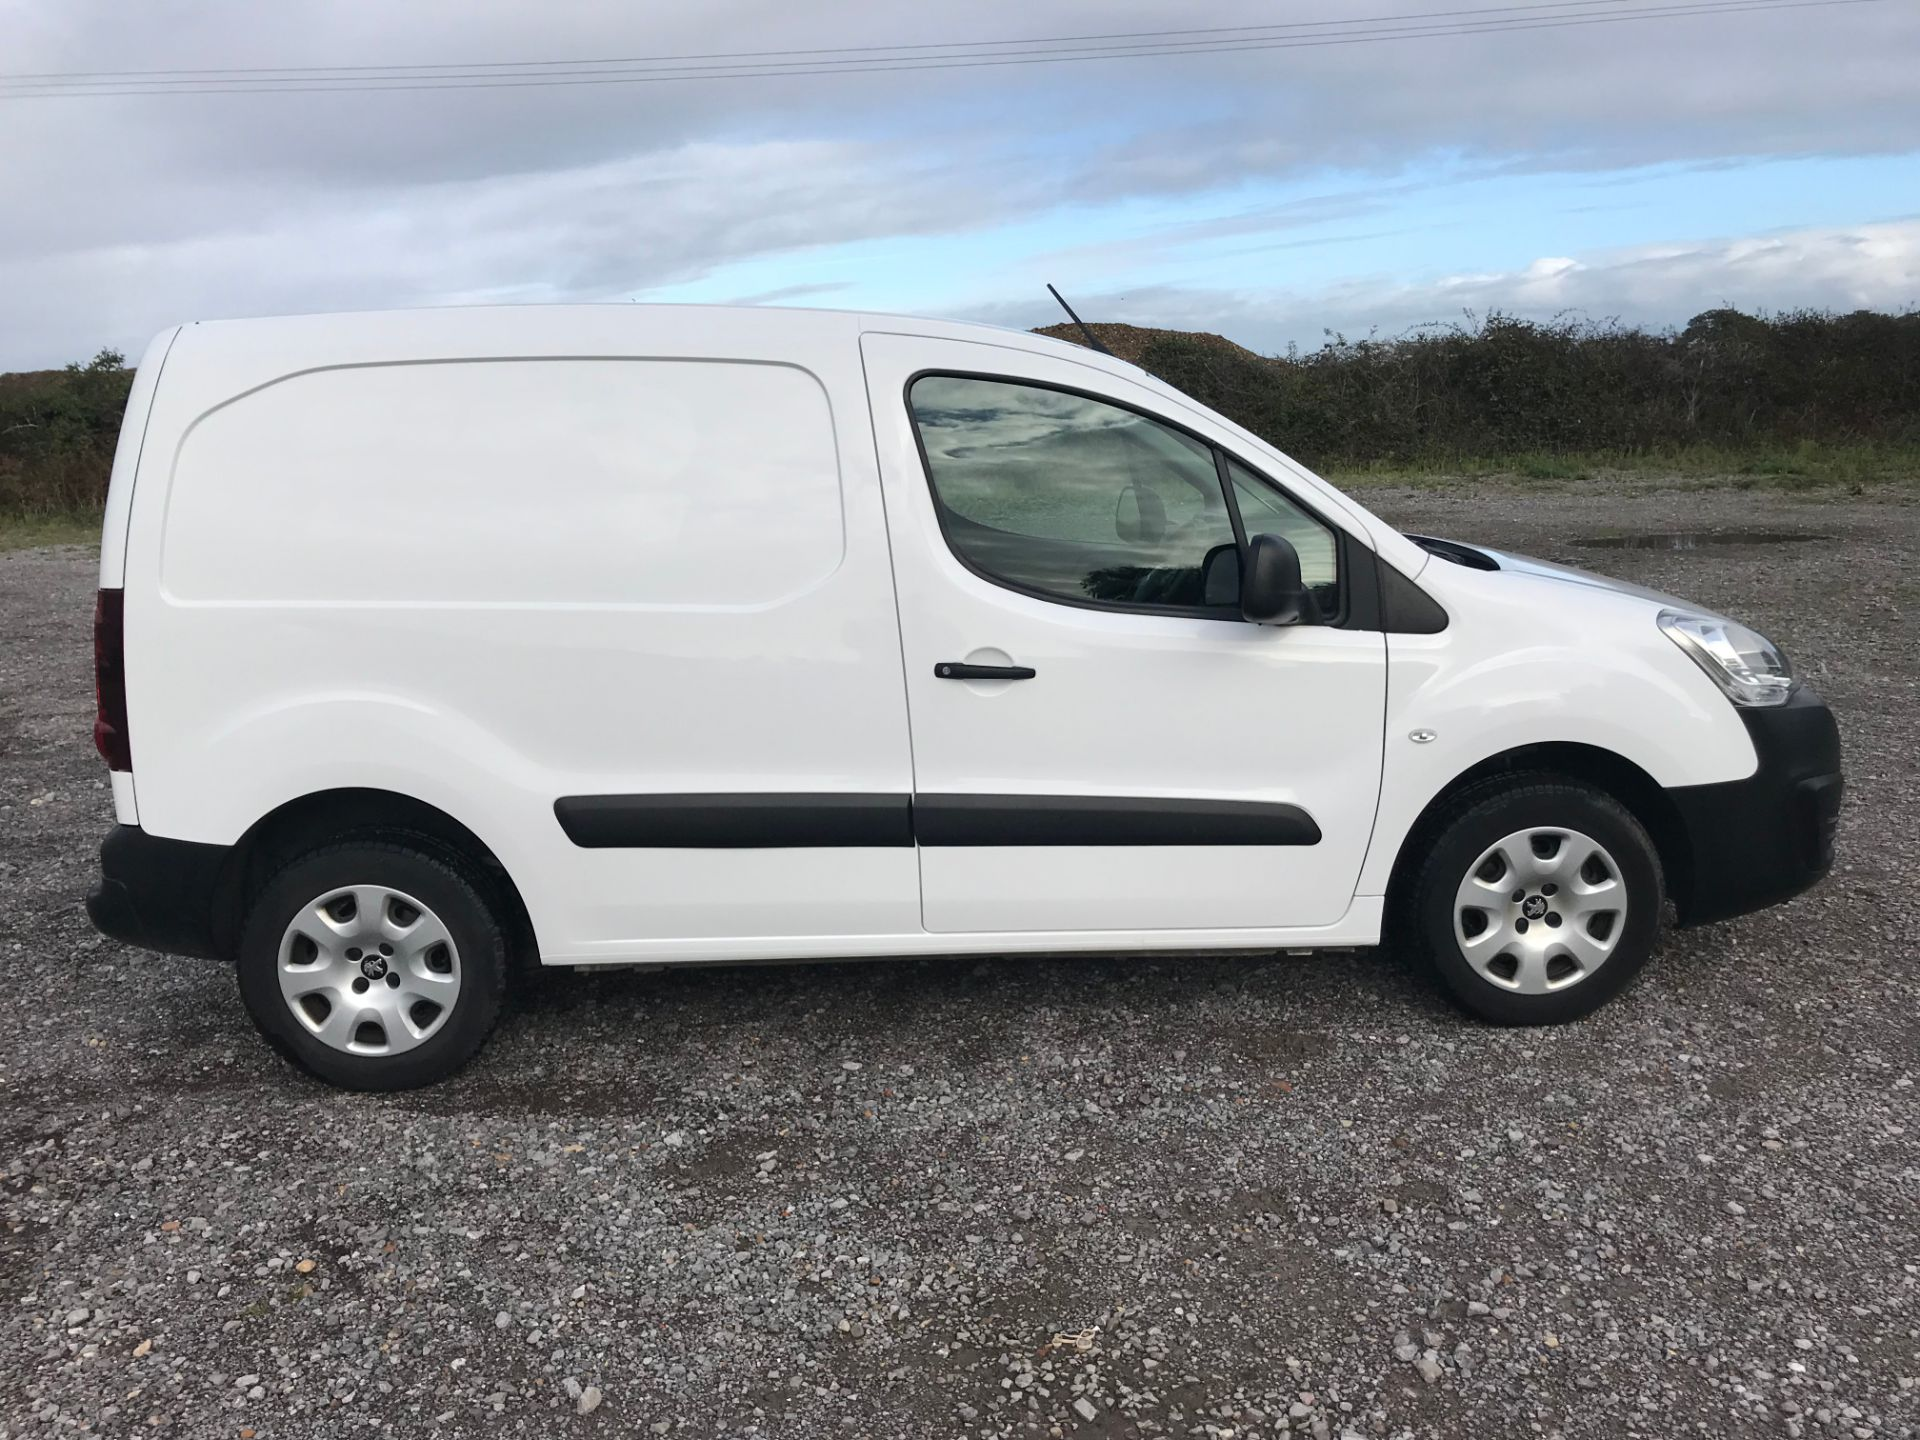 2018 Peugeot Partner 850 1.6 Bluehdi 100 Professional Van [Non Ss]*Restricted to 69MPH* (NV18PXR) Image 9